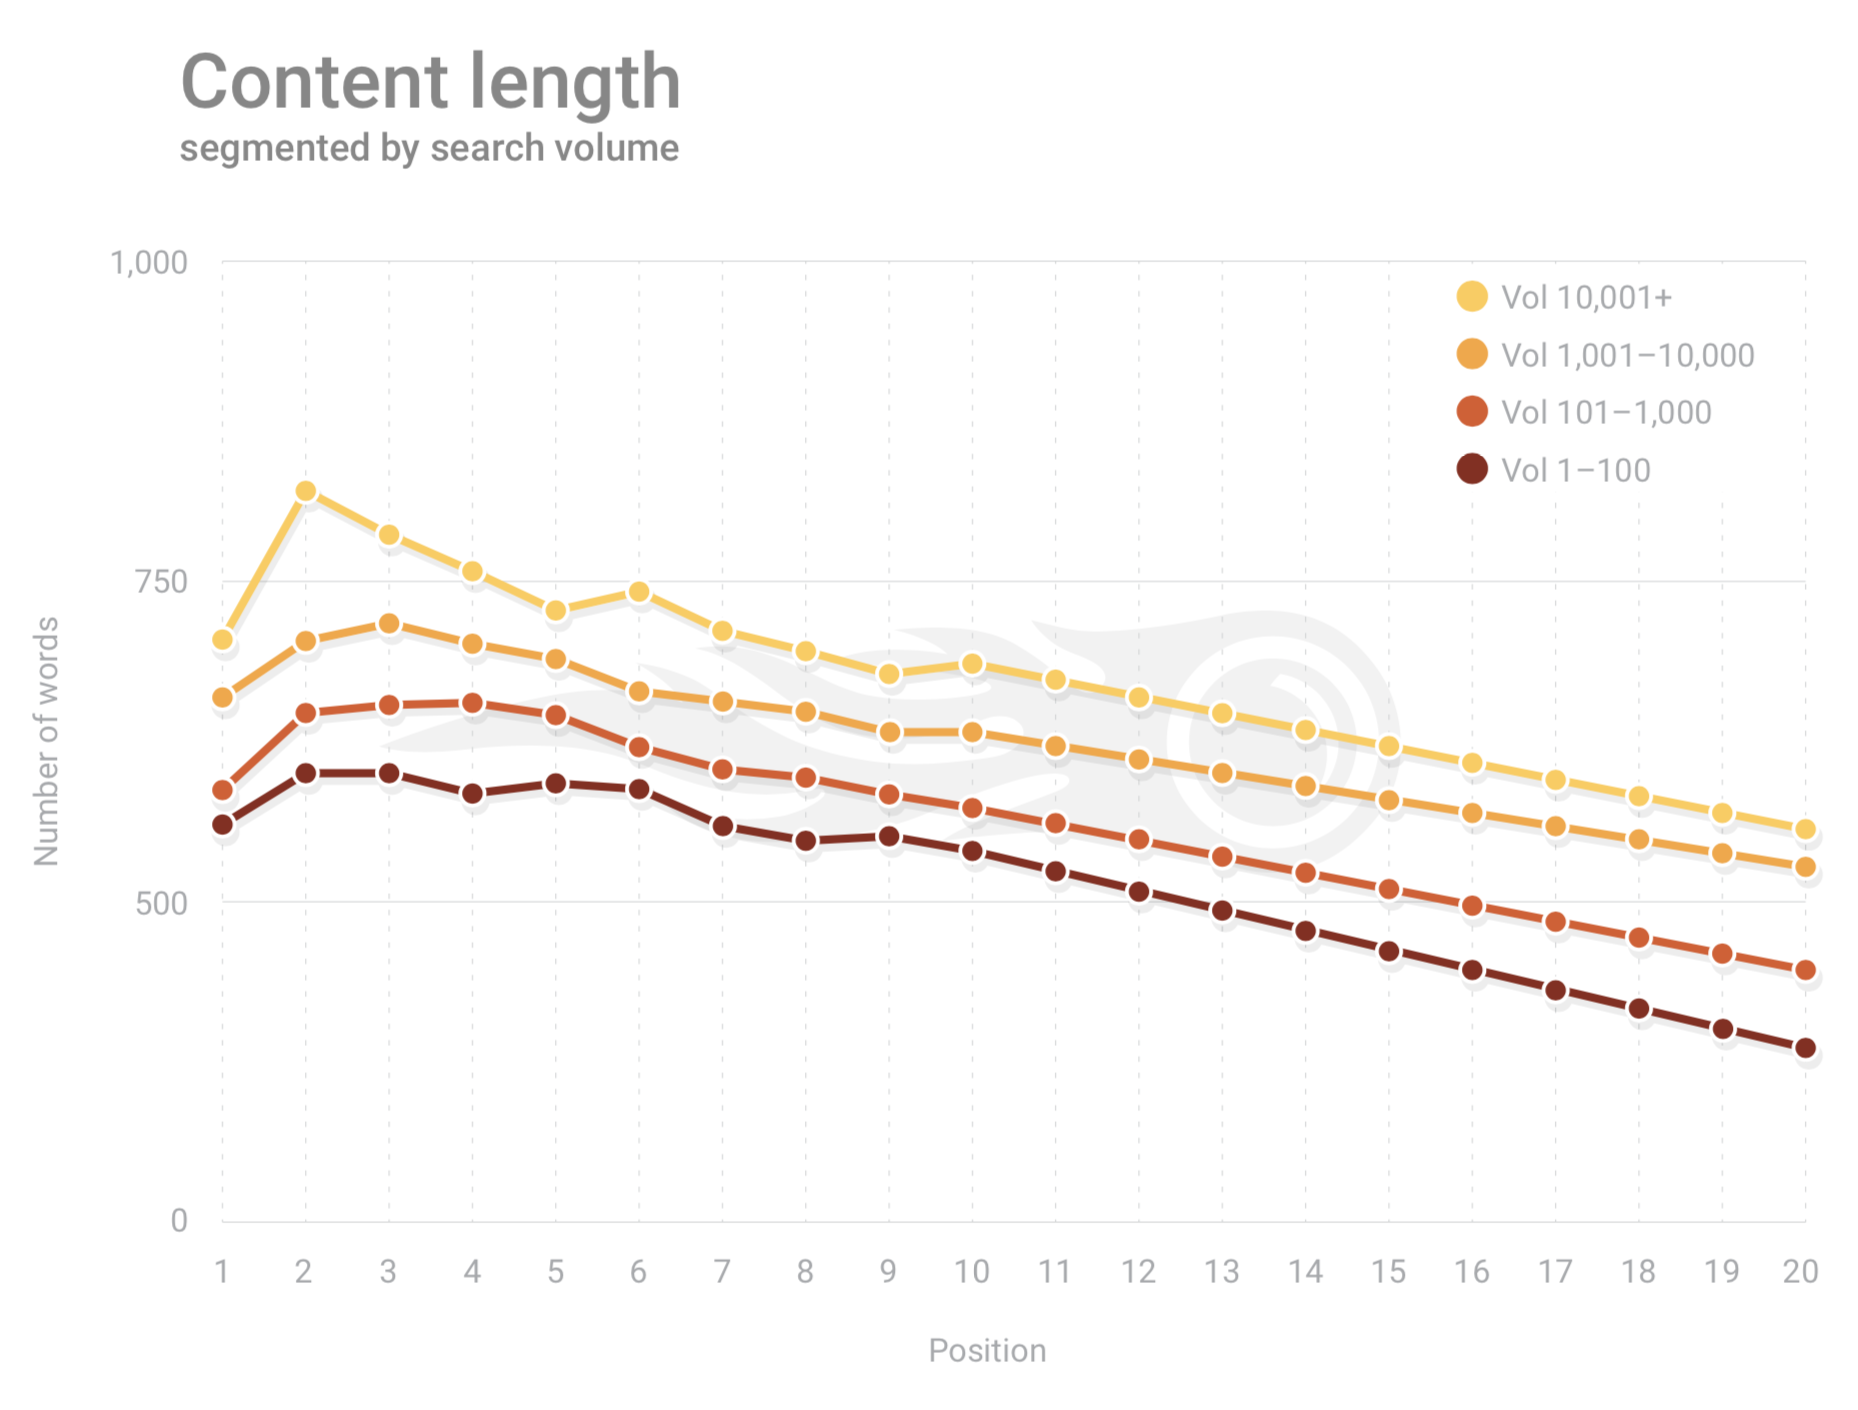 SEMRush Google Content Length 2019